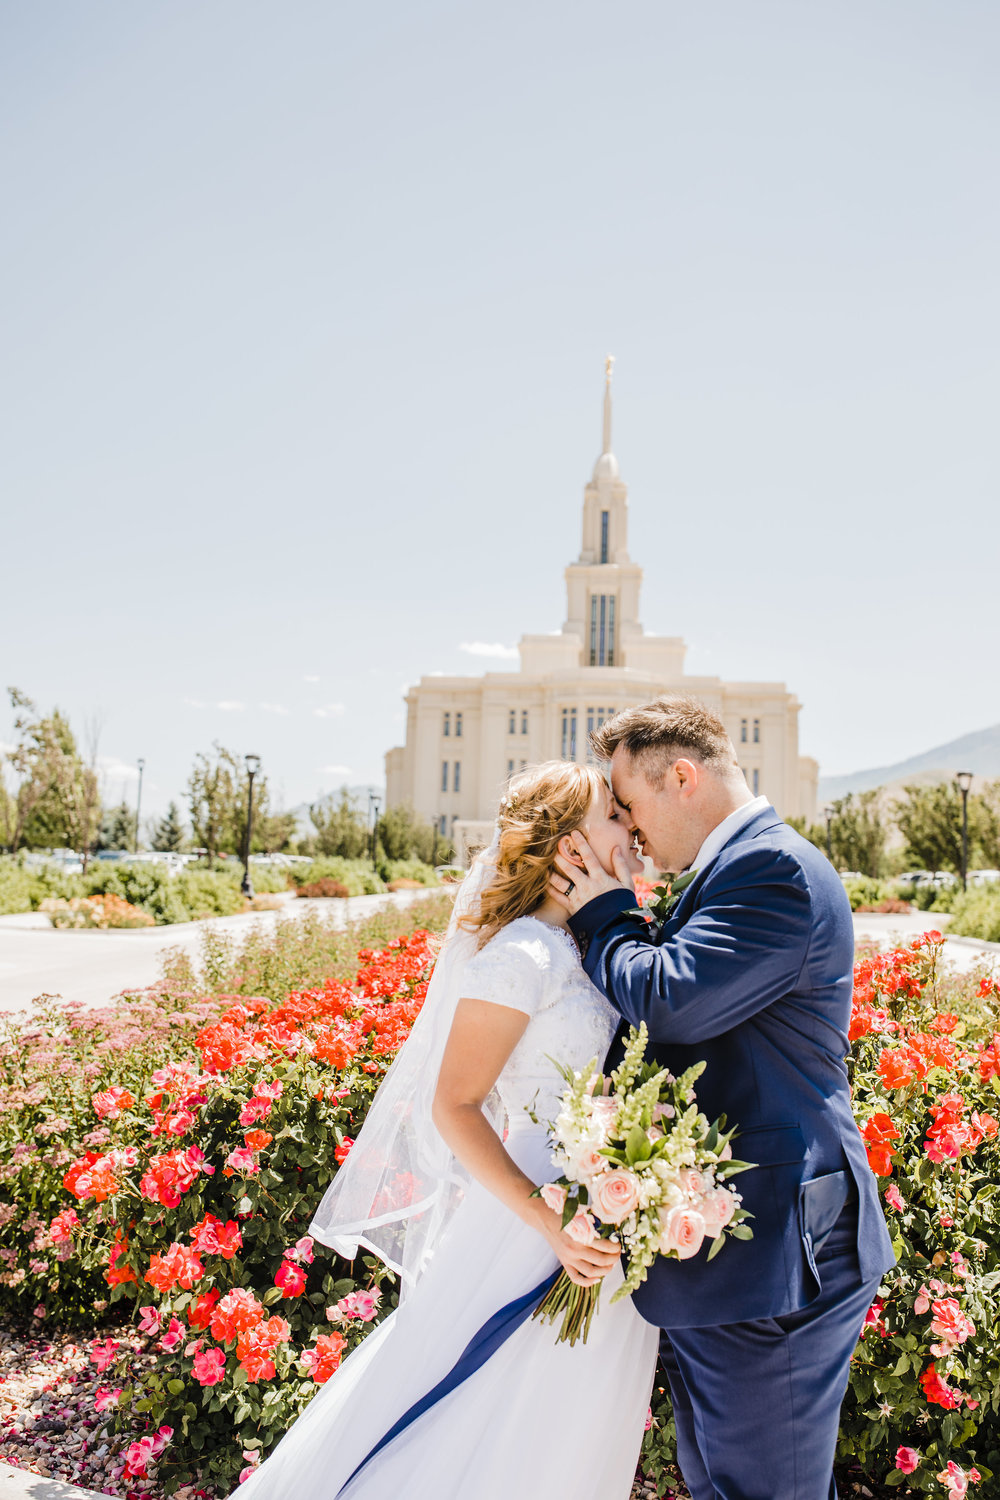 professional wedding photographer in logan utah lds temple wedding kissing red flowers